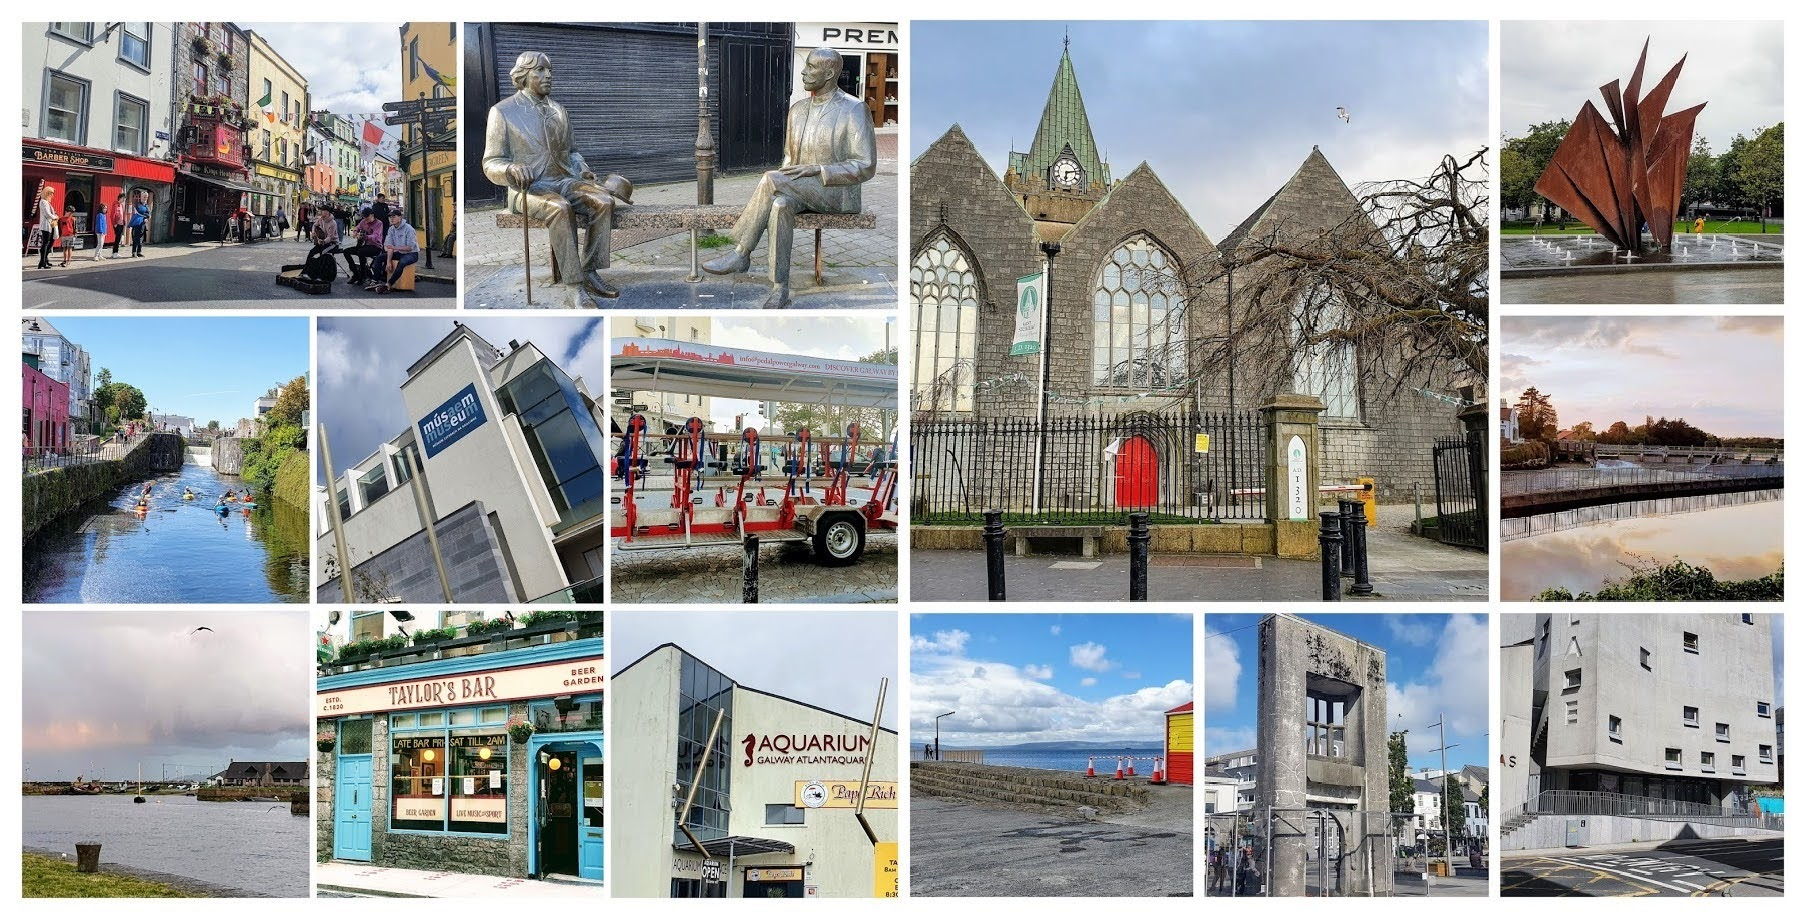 Things to do in Galway City - collage of Eyre Square, the Two Oscars, St Nicholas collegiate church, Martin Fountain, the salmon race, the Corrib river, Galway Museum, The Browne Doorway, Ireland National Acquarium, The Claddagh